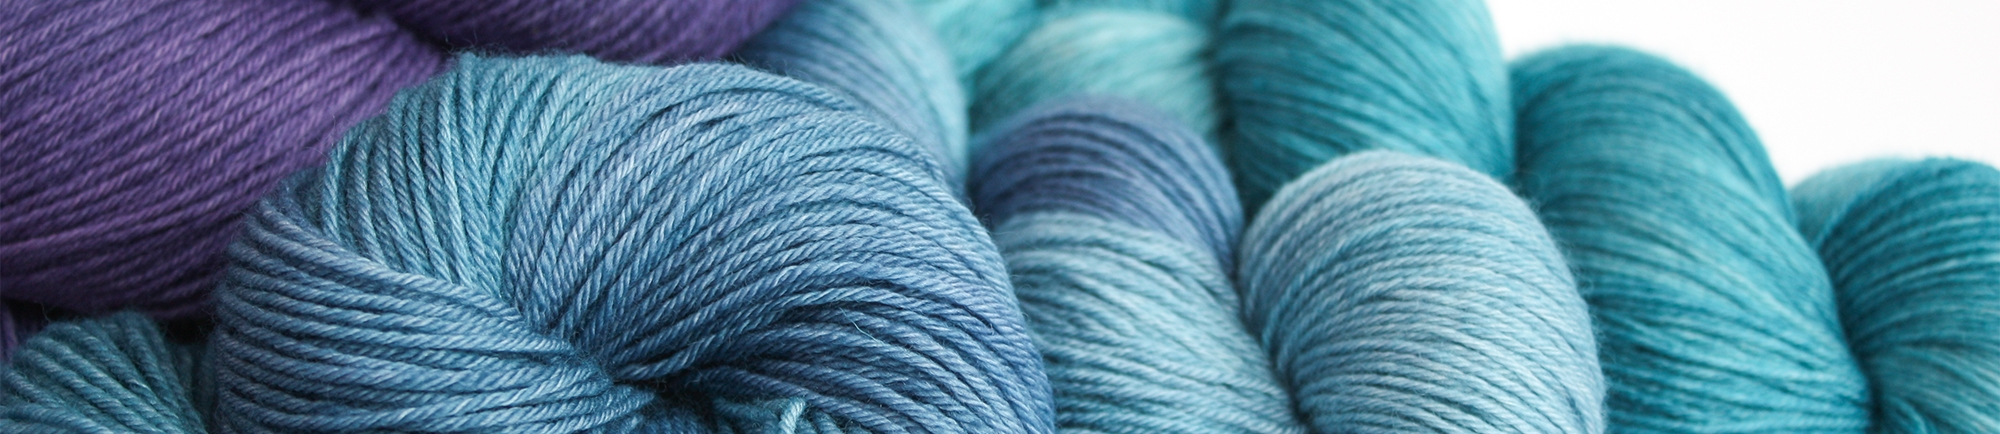 100% Wolle superwash (Merino...